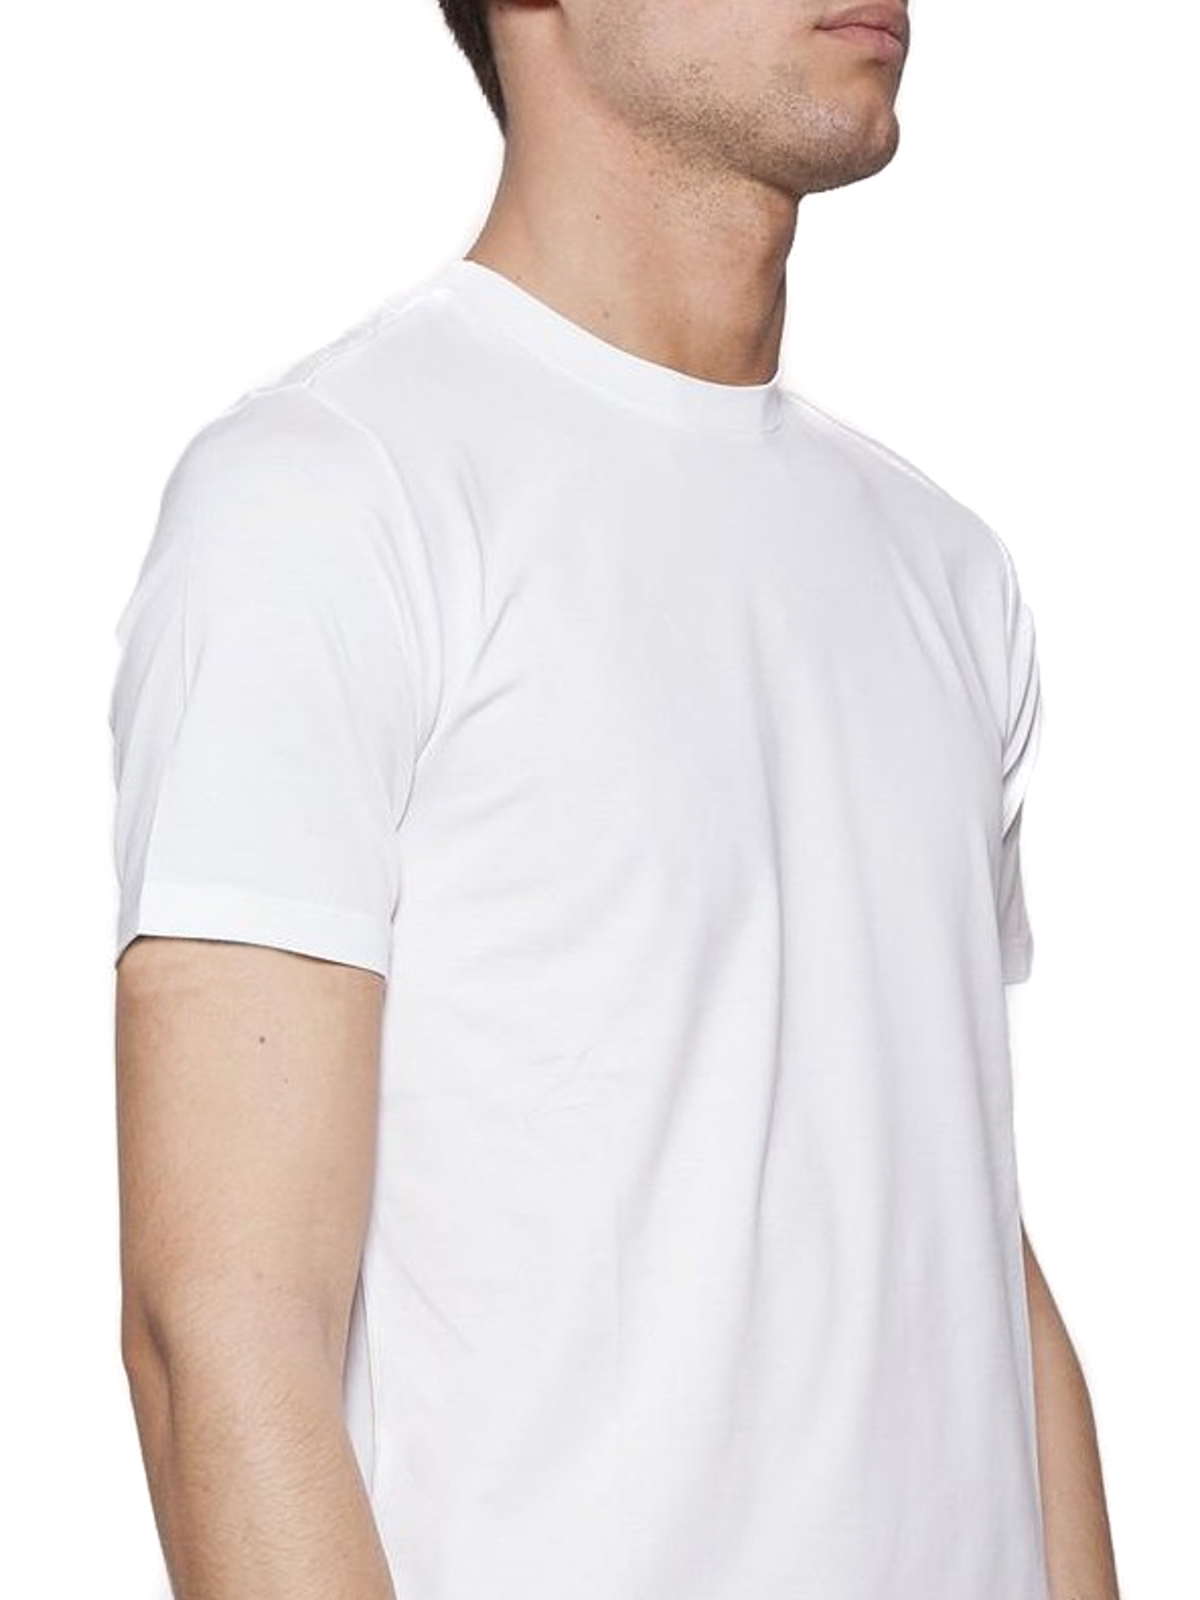 huge discount 3c86a 0c018 Cruciani - White stretch jersey T-shirt - t-shirts ...